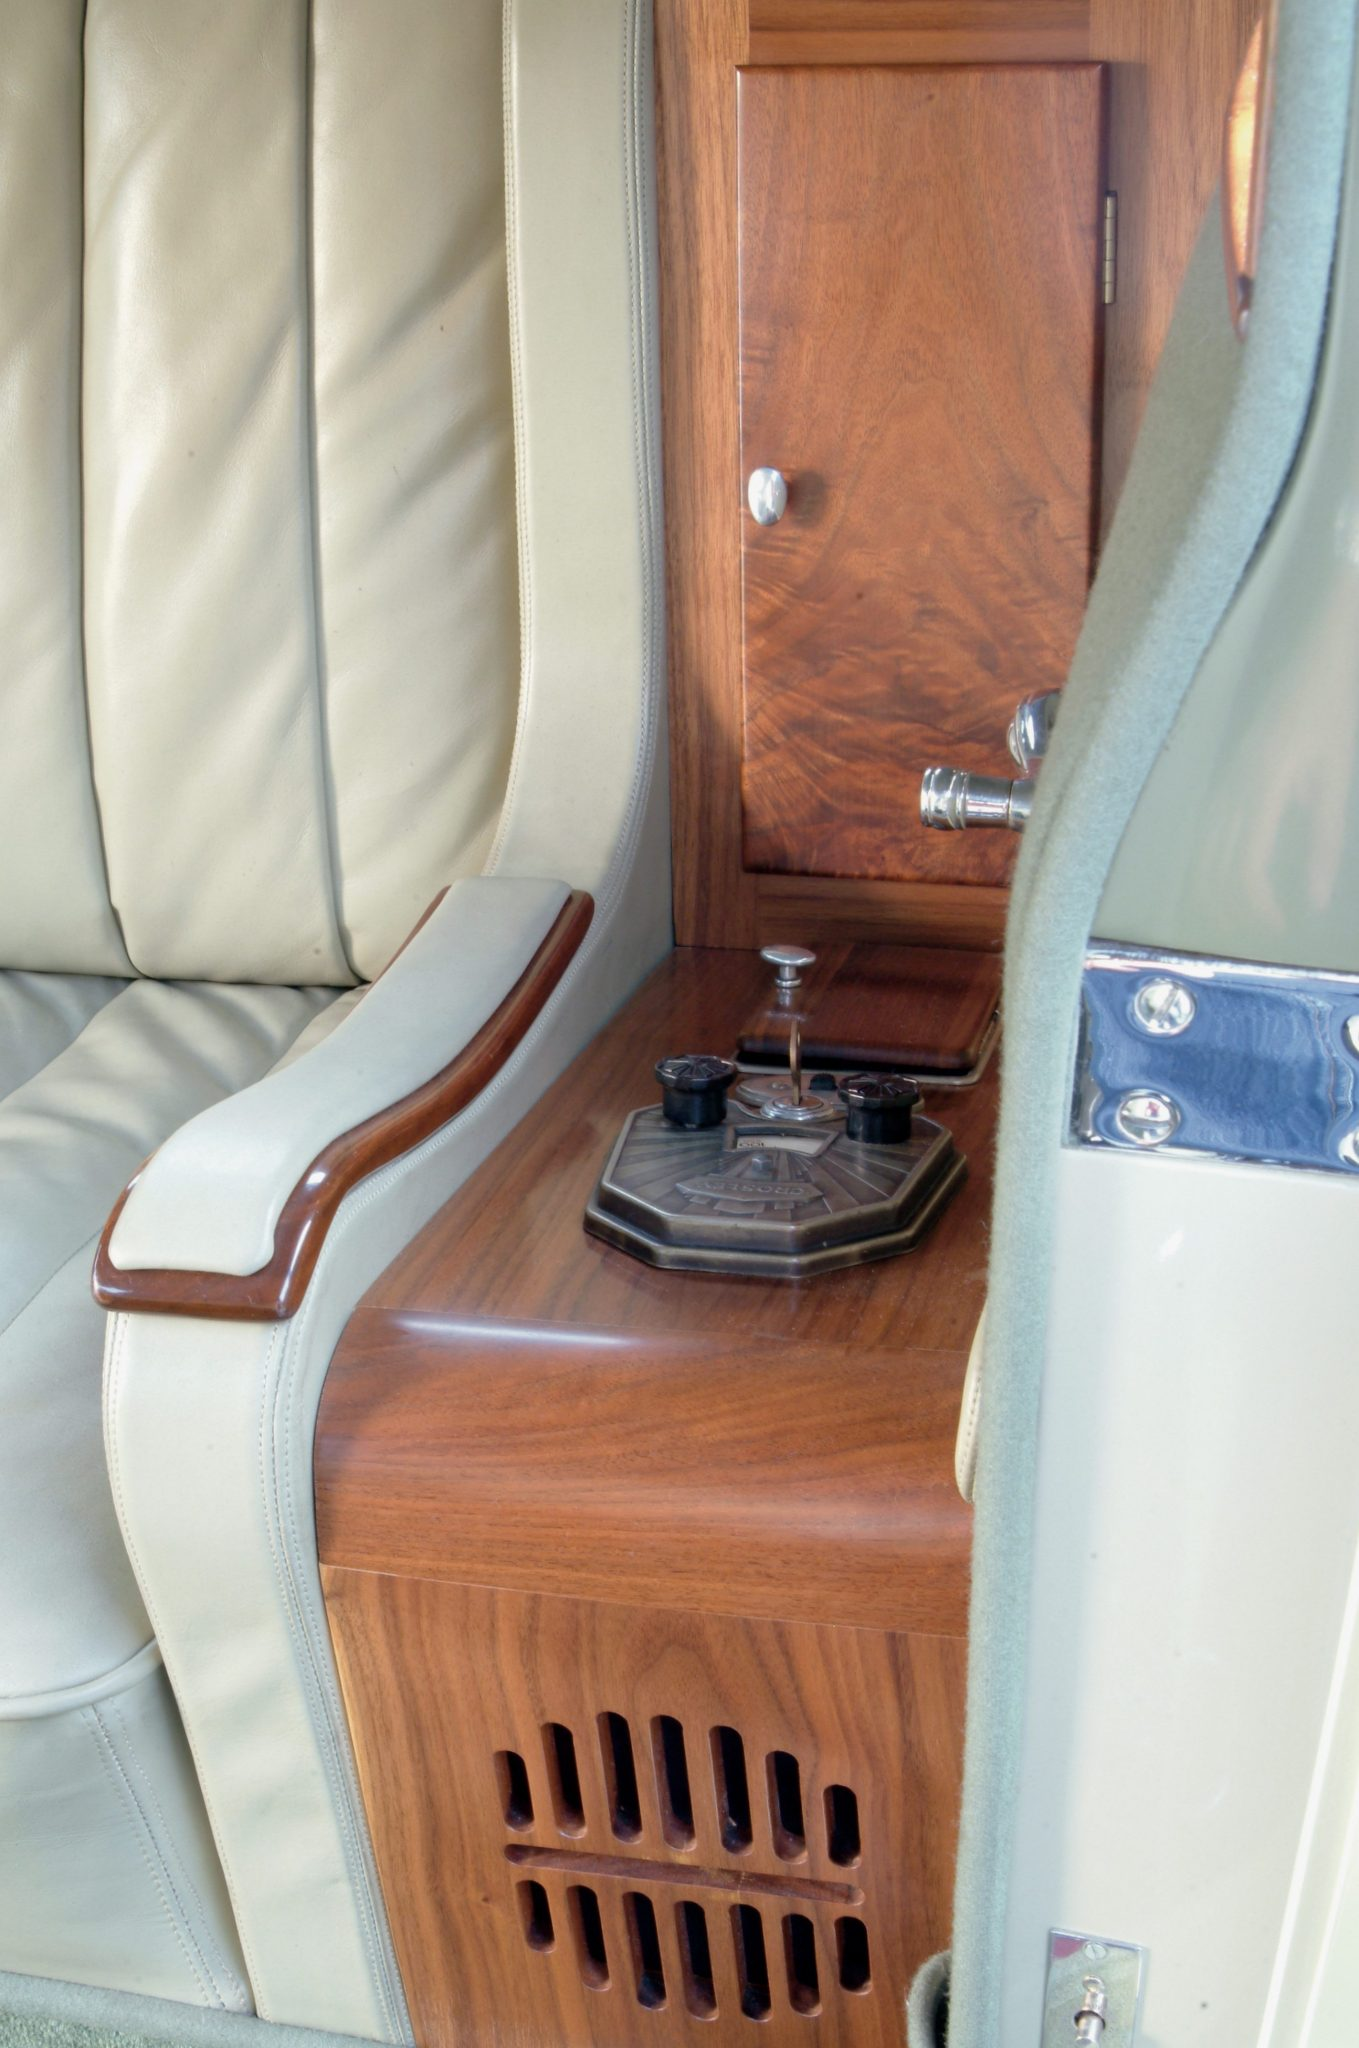 In the 1930s a radio was a seldom-seen option but the Judkins Victoria coupe, a short wheelbase luxury car, was equipped with a Crosley radio and speaker mounted next to the left rear armrest. The four-passenger interior was designed to cater to the rear occupants, with increased legroom, comfortable seating, the radio, and a front passenger seat designed to fold forward to permit easier entry and exit from the rear.